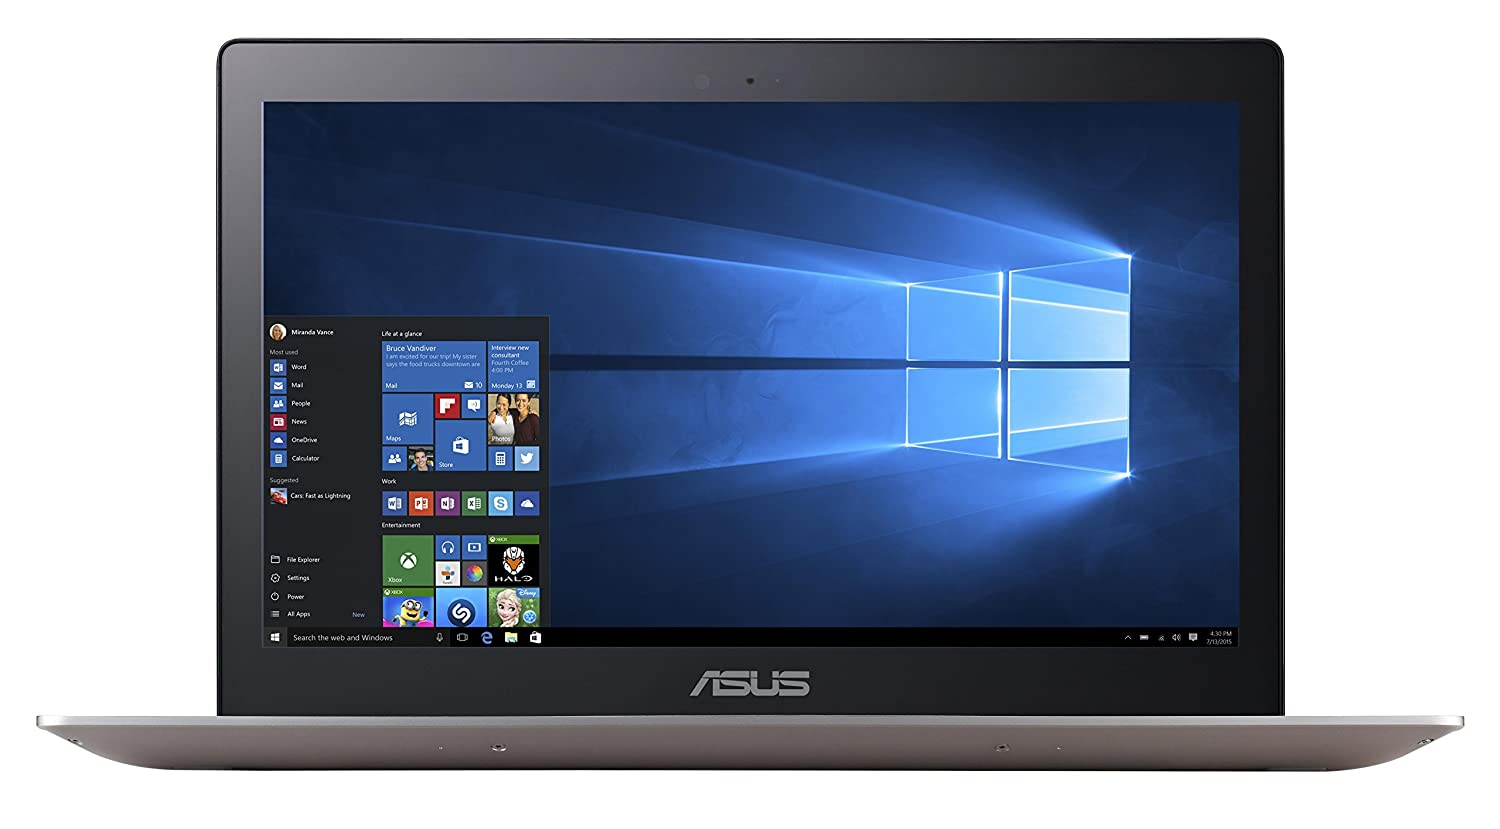 Asus ZENBOOK Prime UX31A Intel Rapid Start Technology Driver